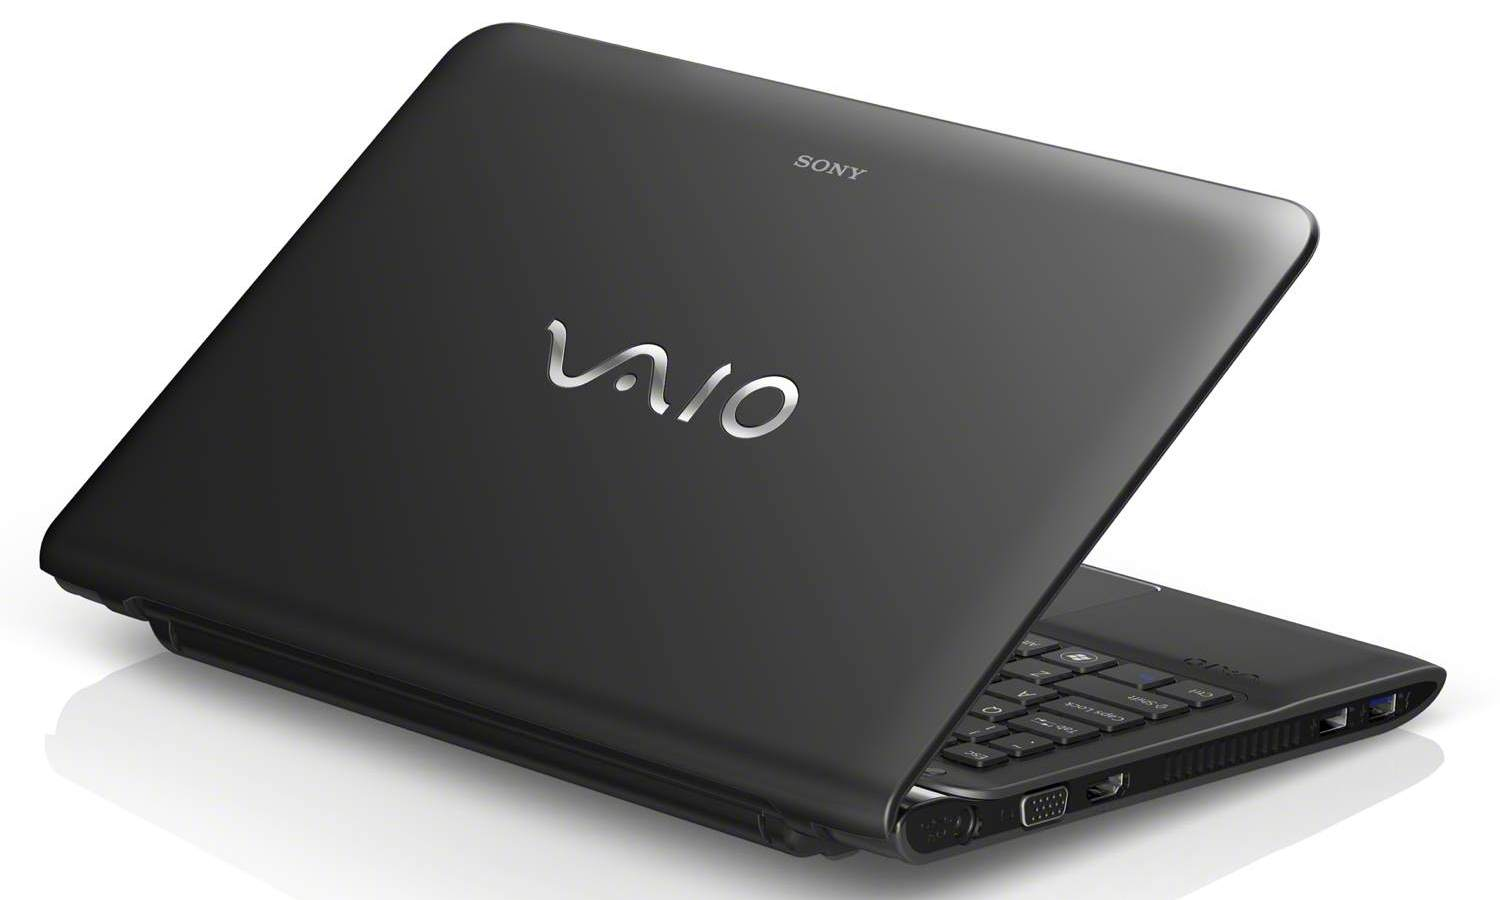 Sony Vaio SVE11-135CV, Notebook AMD Bodi Simple Harga Murah